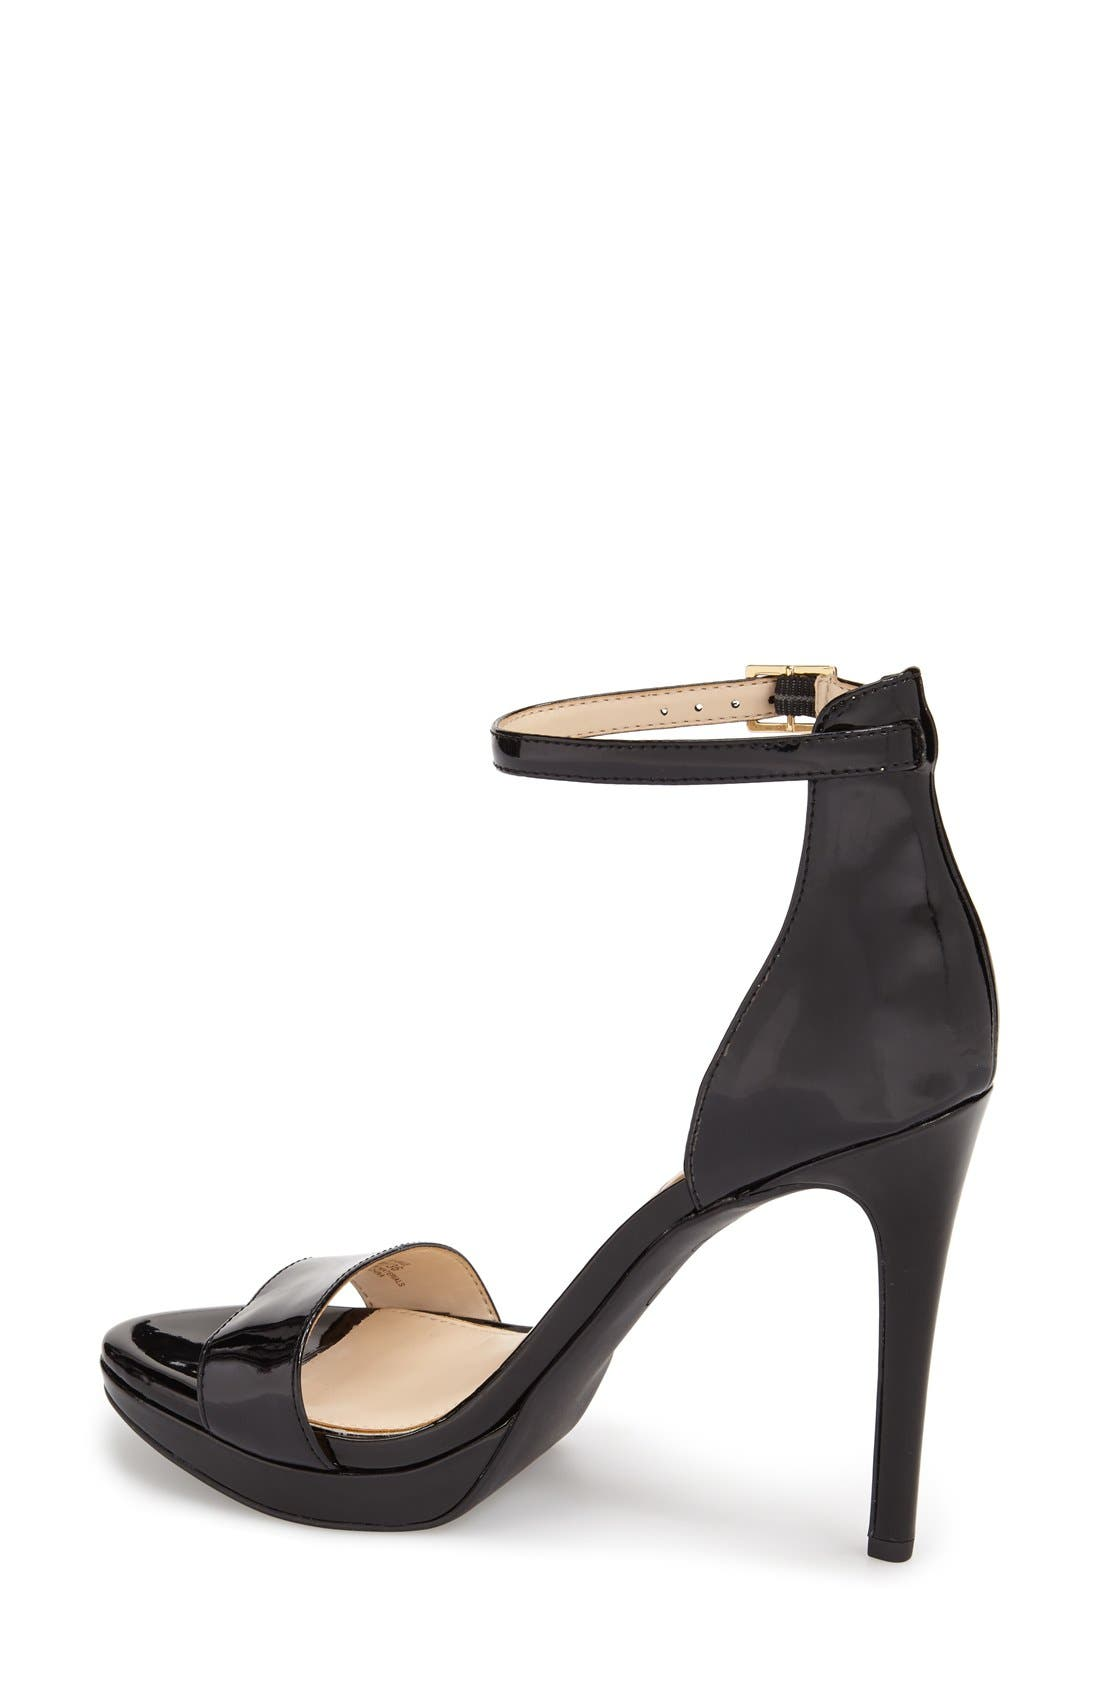 Alternate Image 2  - Jessica Simpson 'Vaile' Sandal (Women)